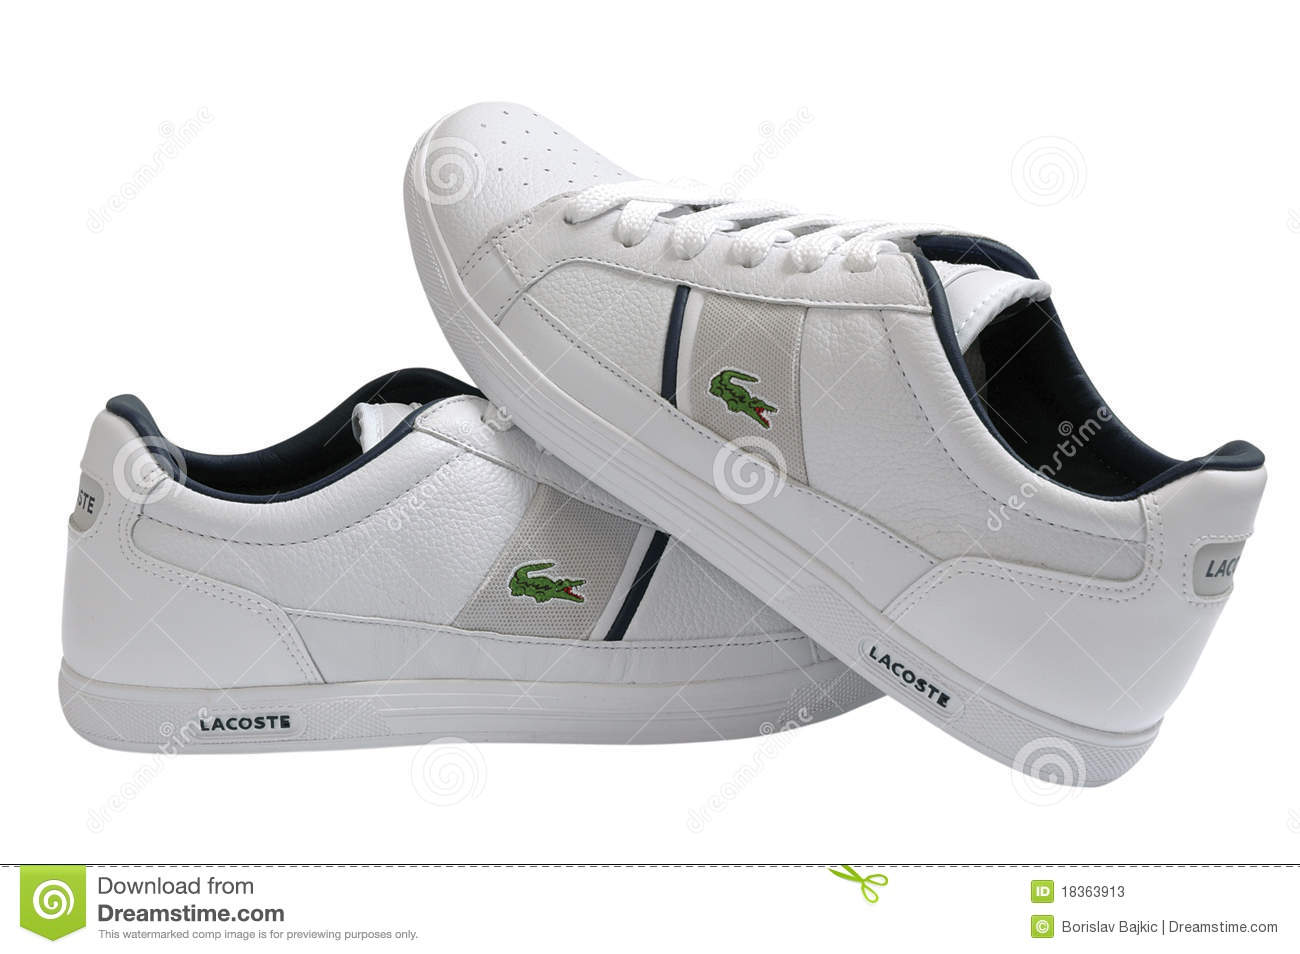 Lacoste Sport Shoes Editorial Stock Photo - Image: 18363913